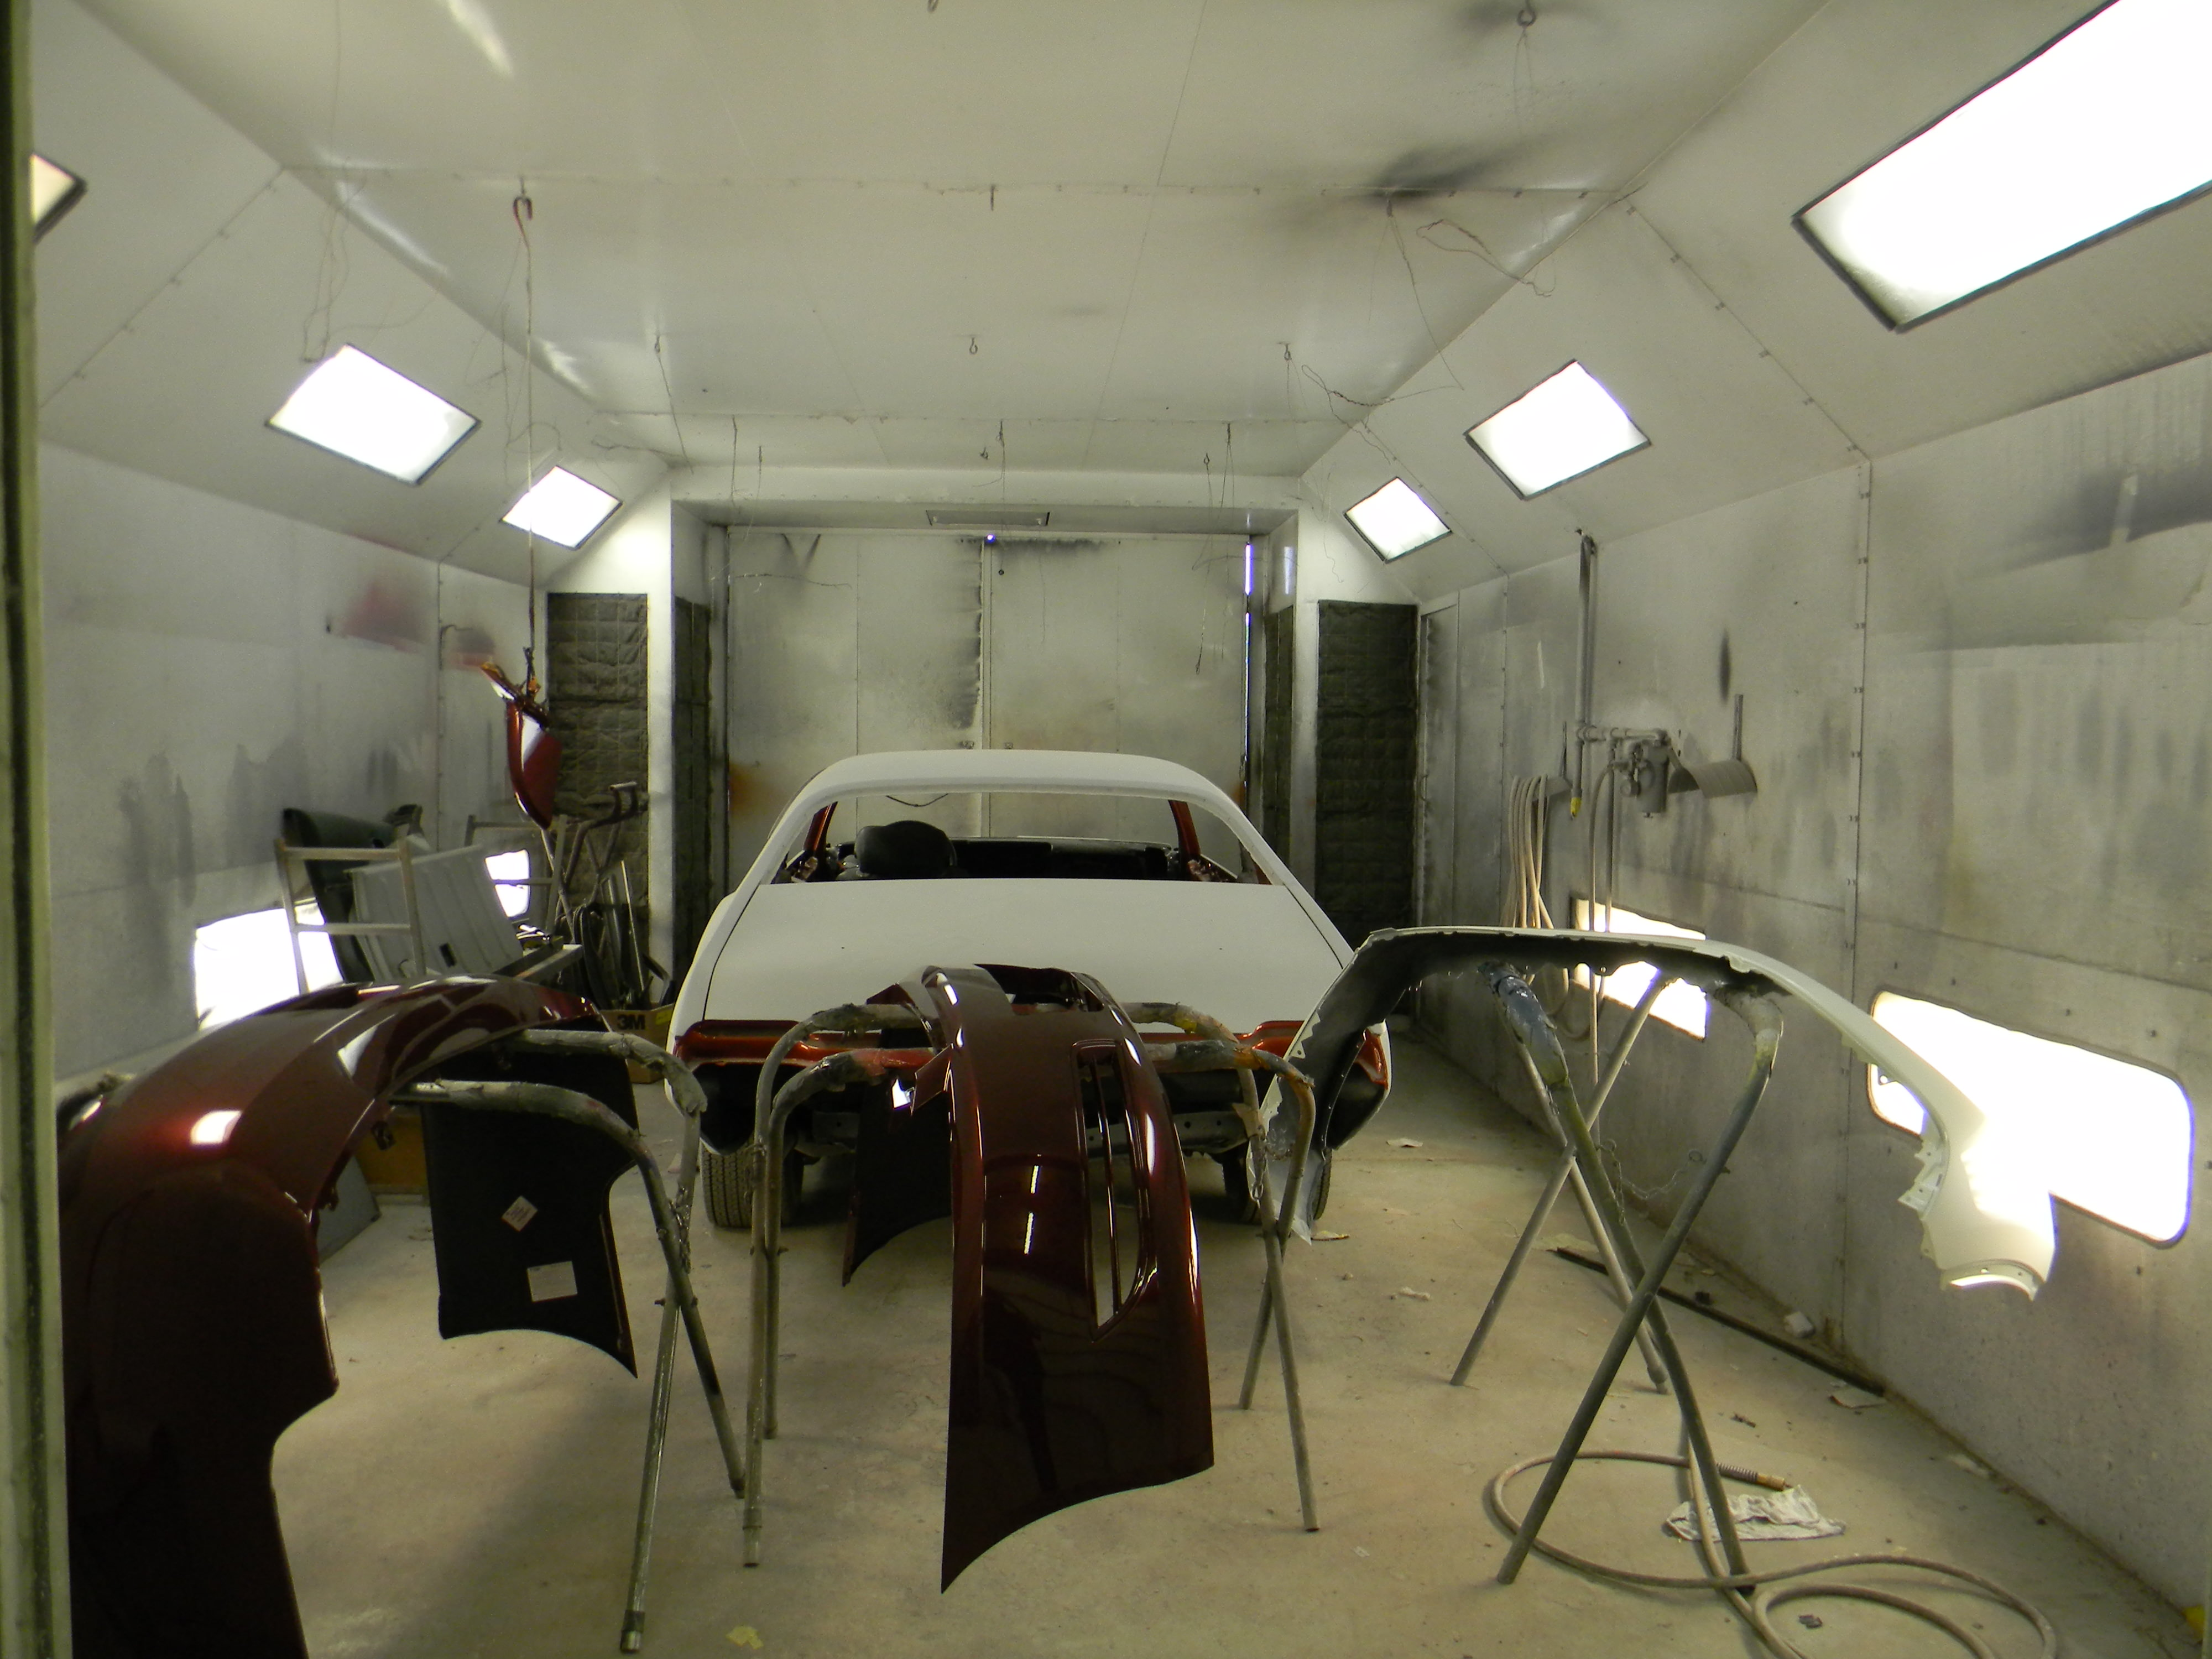 Reesman Body Shop-Vehicle in Paint Booth